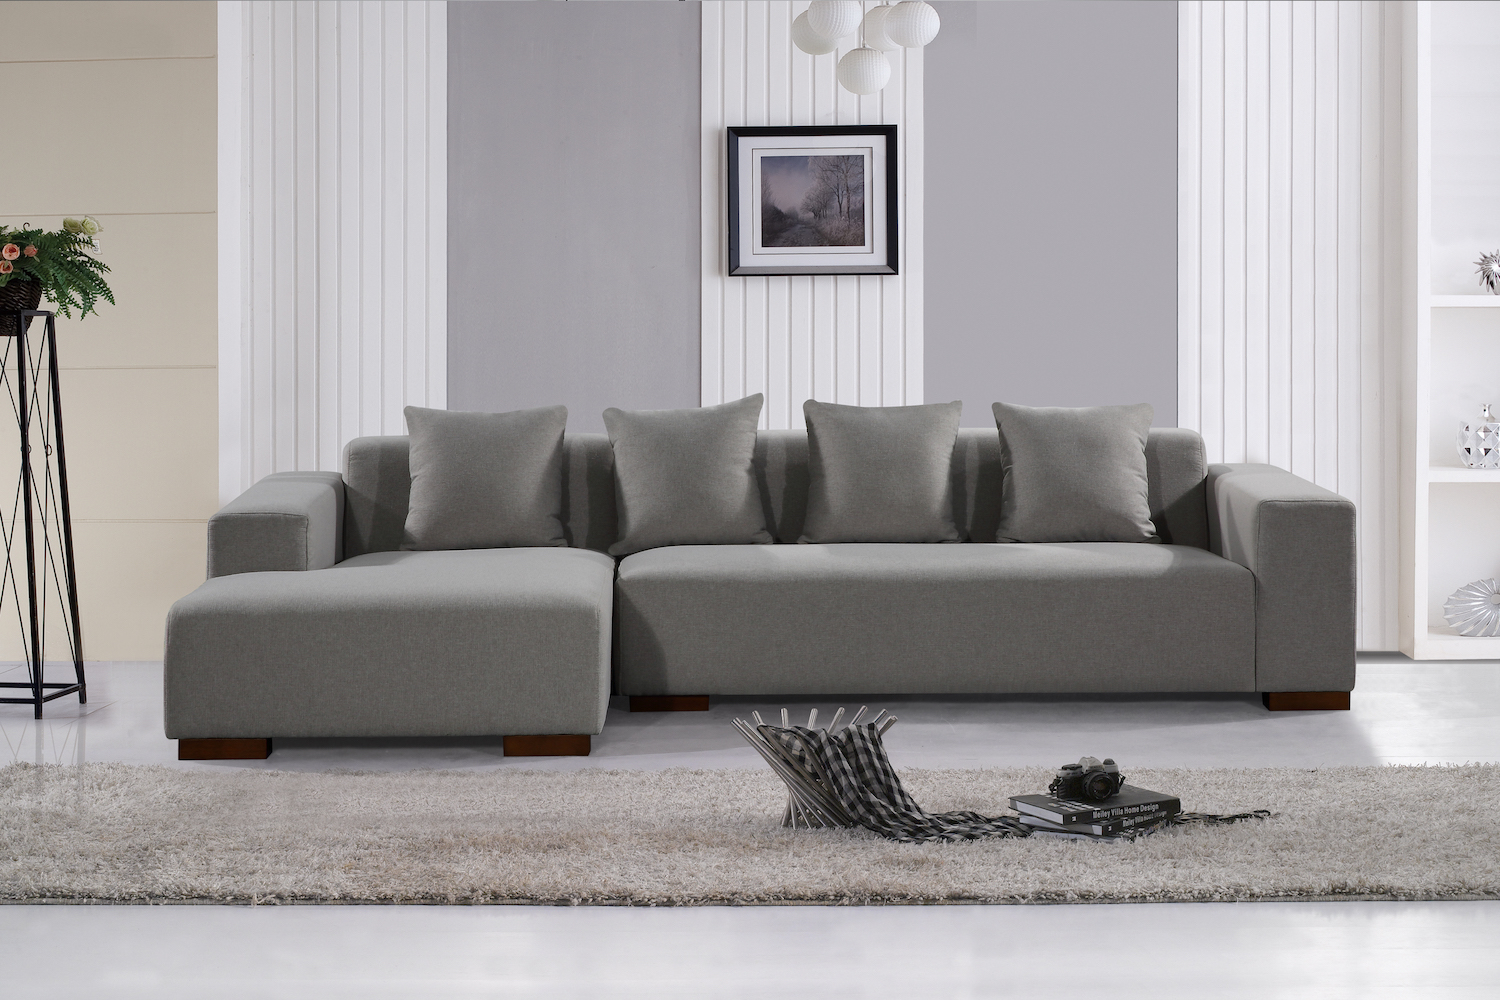 Deep Seating Sectional Sofa – Light Grey Fabric For Noa Sectional Sofas With Ottoman Gray (View 12 of 15)